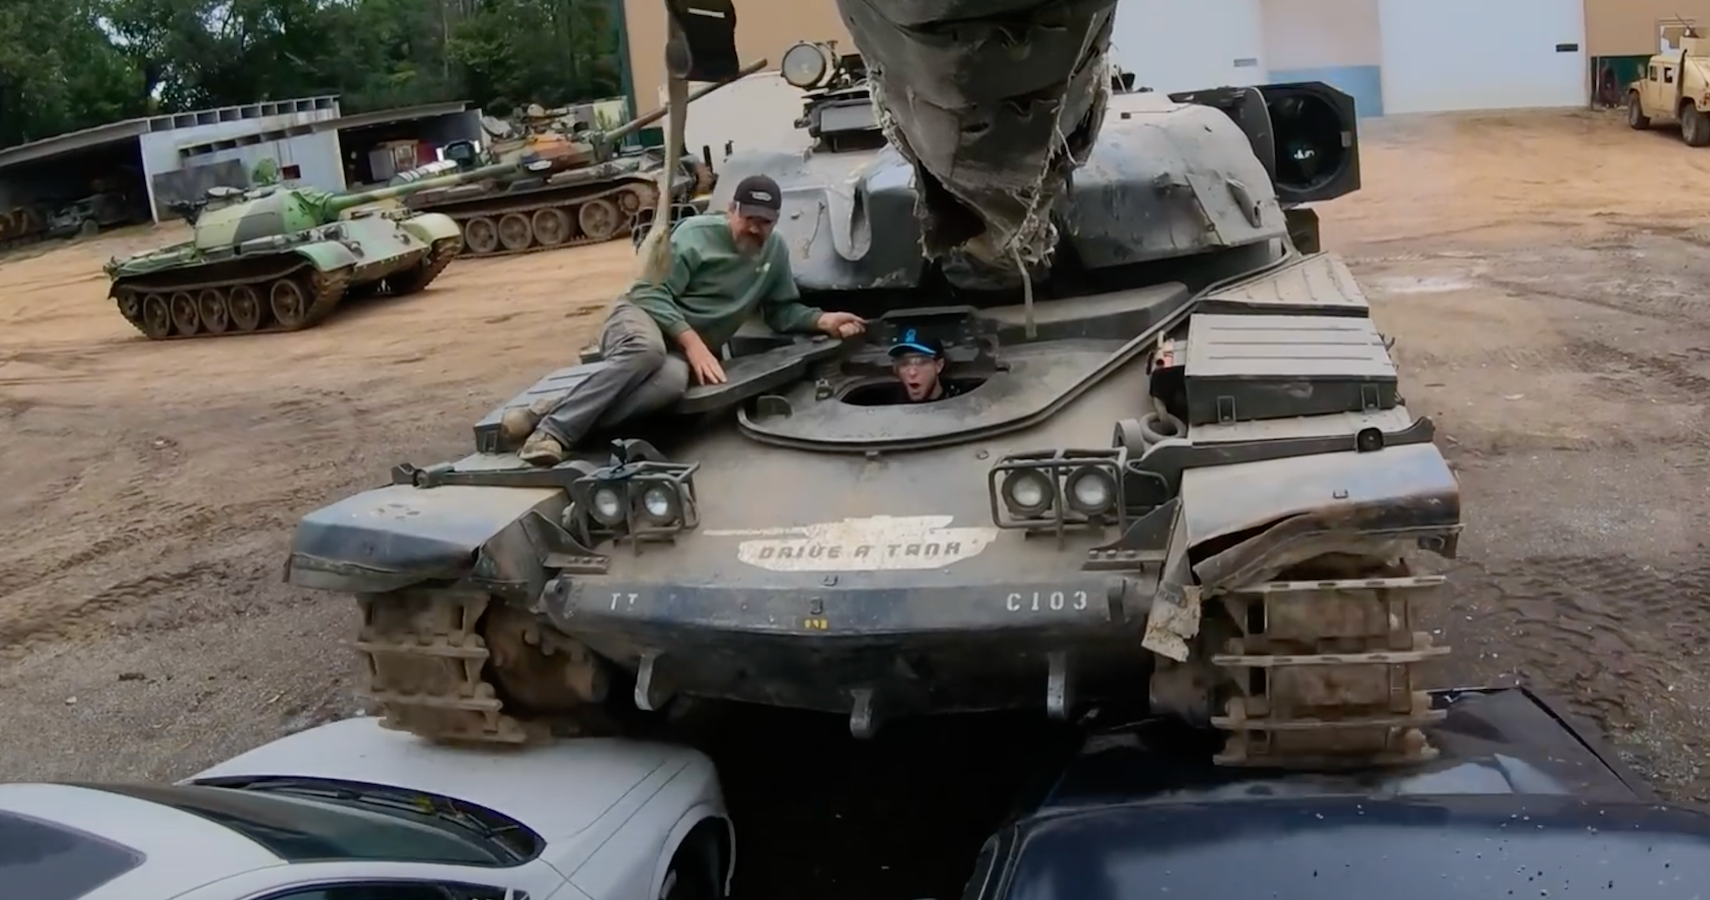 This Lucky Guy Crushed Some Sedans Using Massive Military Tanks